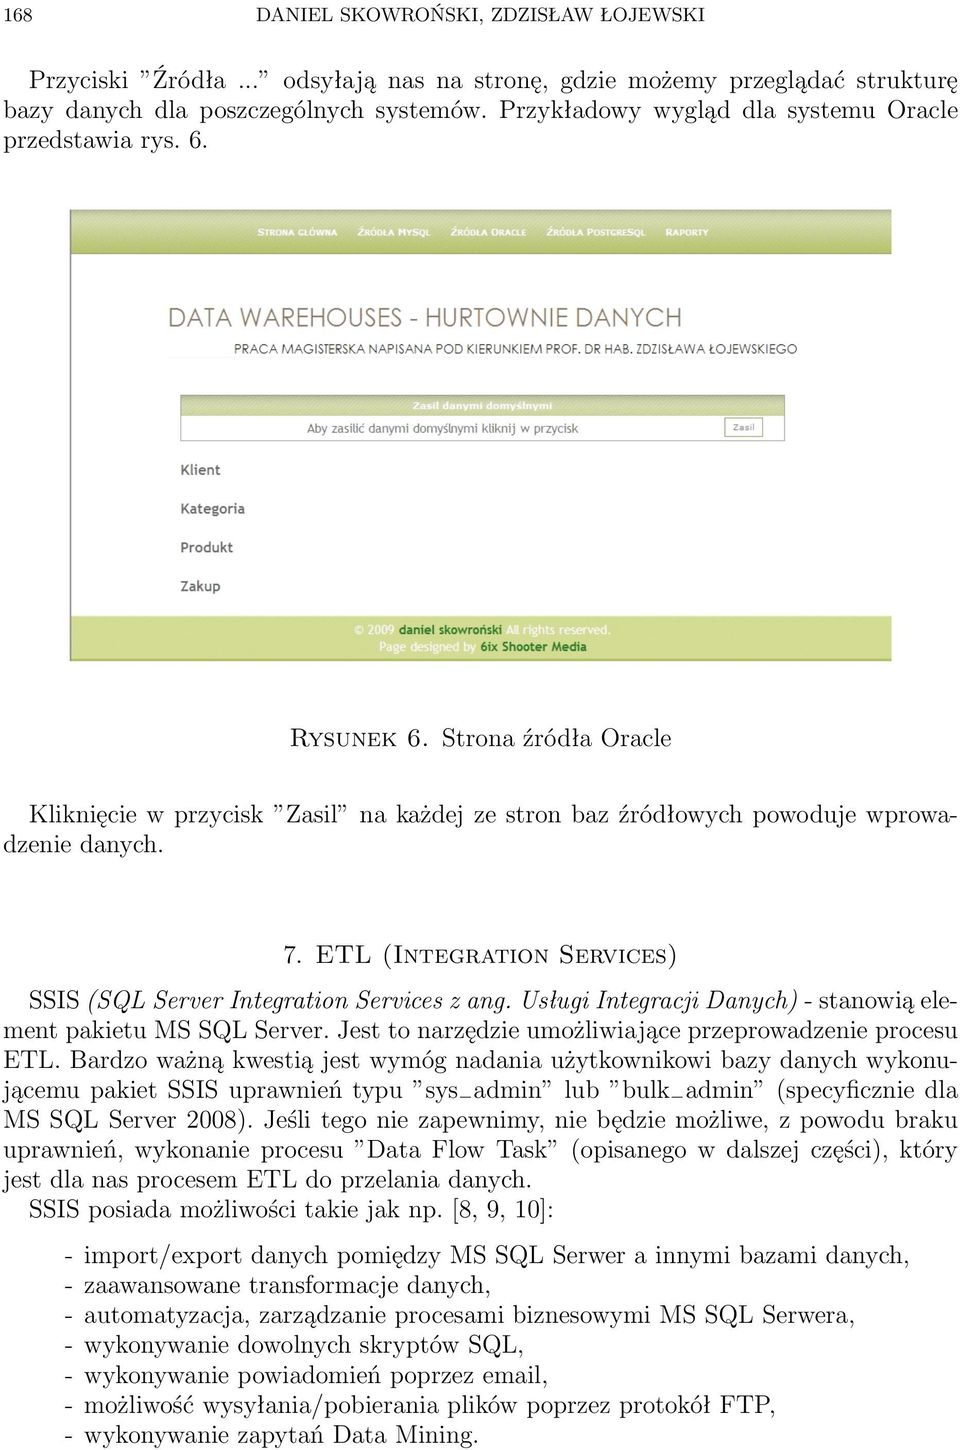 ETL (Integration Services) SSIS (SQL Server Integration Services z ang. Usługi Integracji Danych) - stanowią element pakietu MS SQL Server. Jest to narzędzie umożliwiające przeprowadzenie procesu ETL.